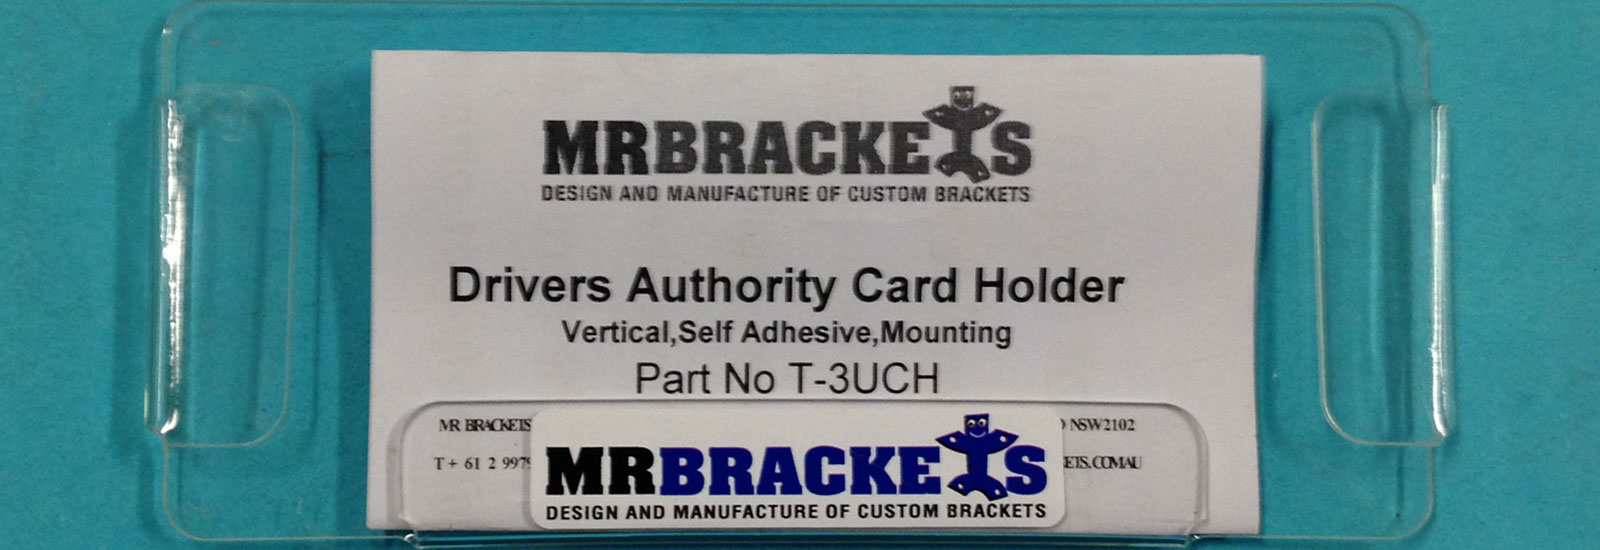 Windscreen Mounting Drivers Authority Card Holder